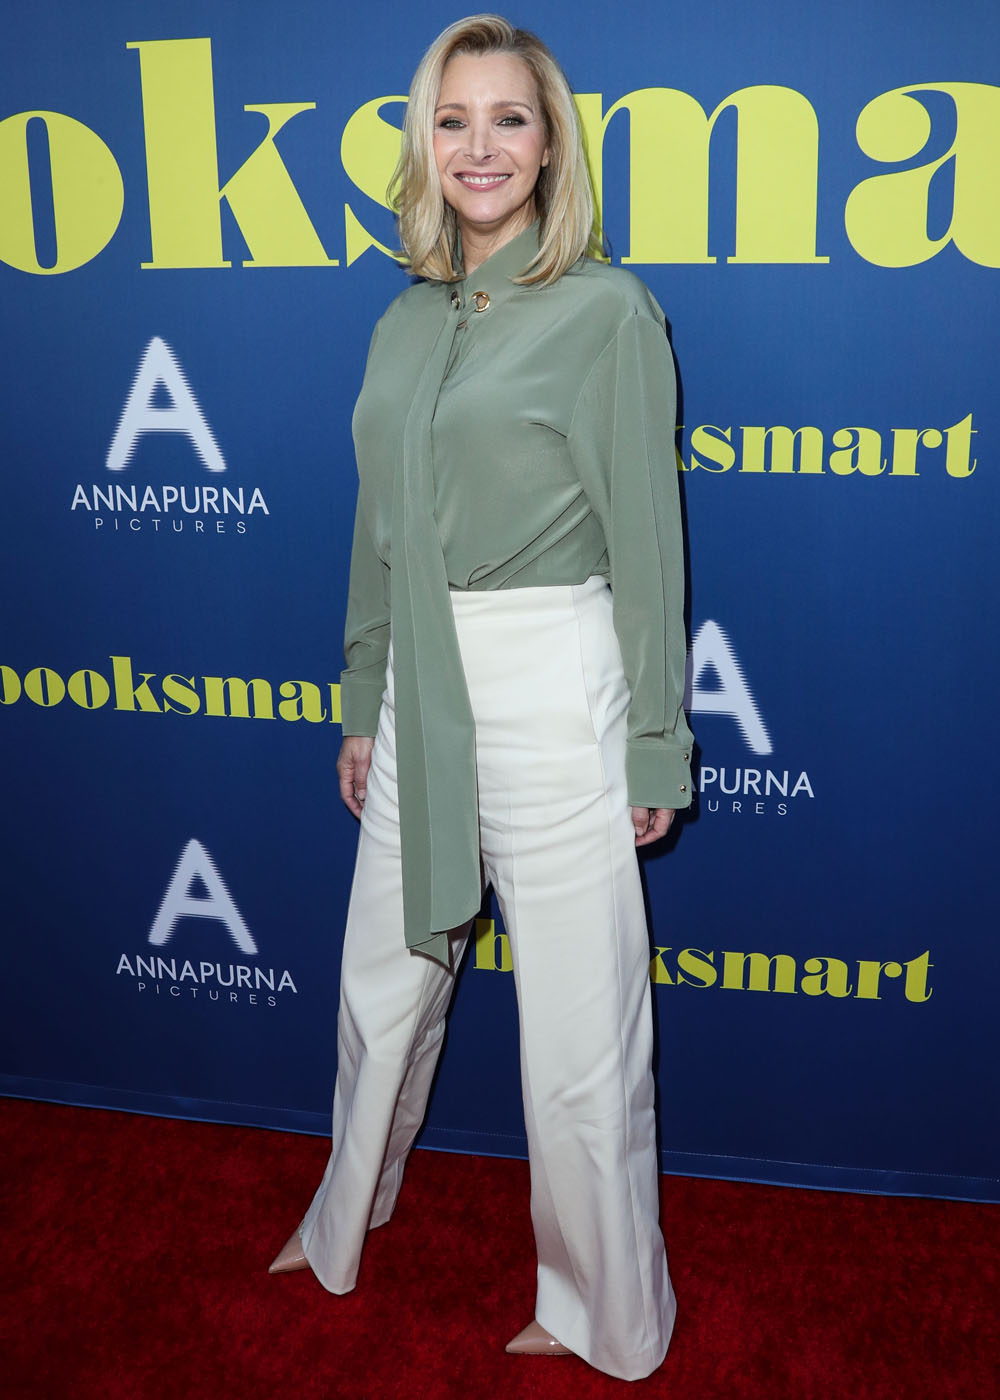 Actress Lisa Kudrow arrives at the Los Angeles Special Screening Of Annapurna Pictures' 'Booksmart' held at the Ace Hotel on May 13, 2019 in Los Angeles, California, United States. (Photo by Xavier Collin/Image Press Agency)